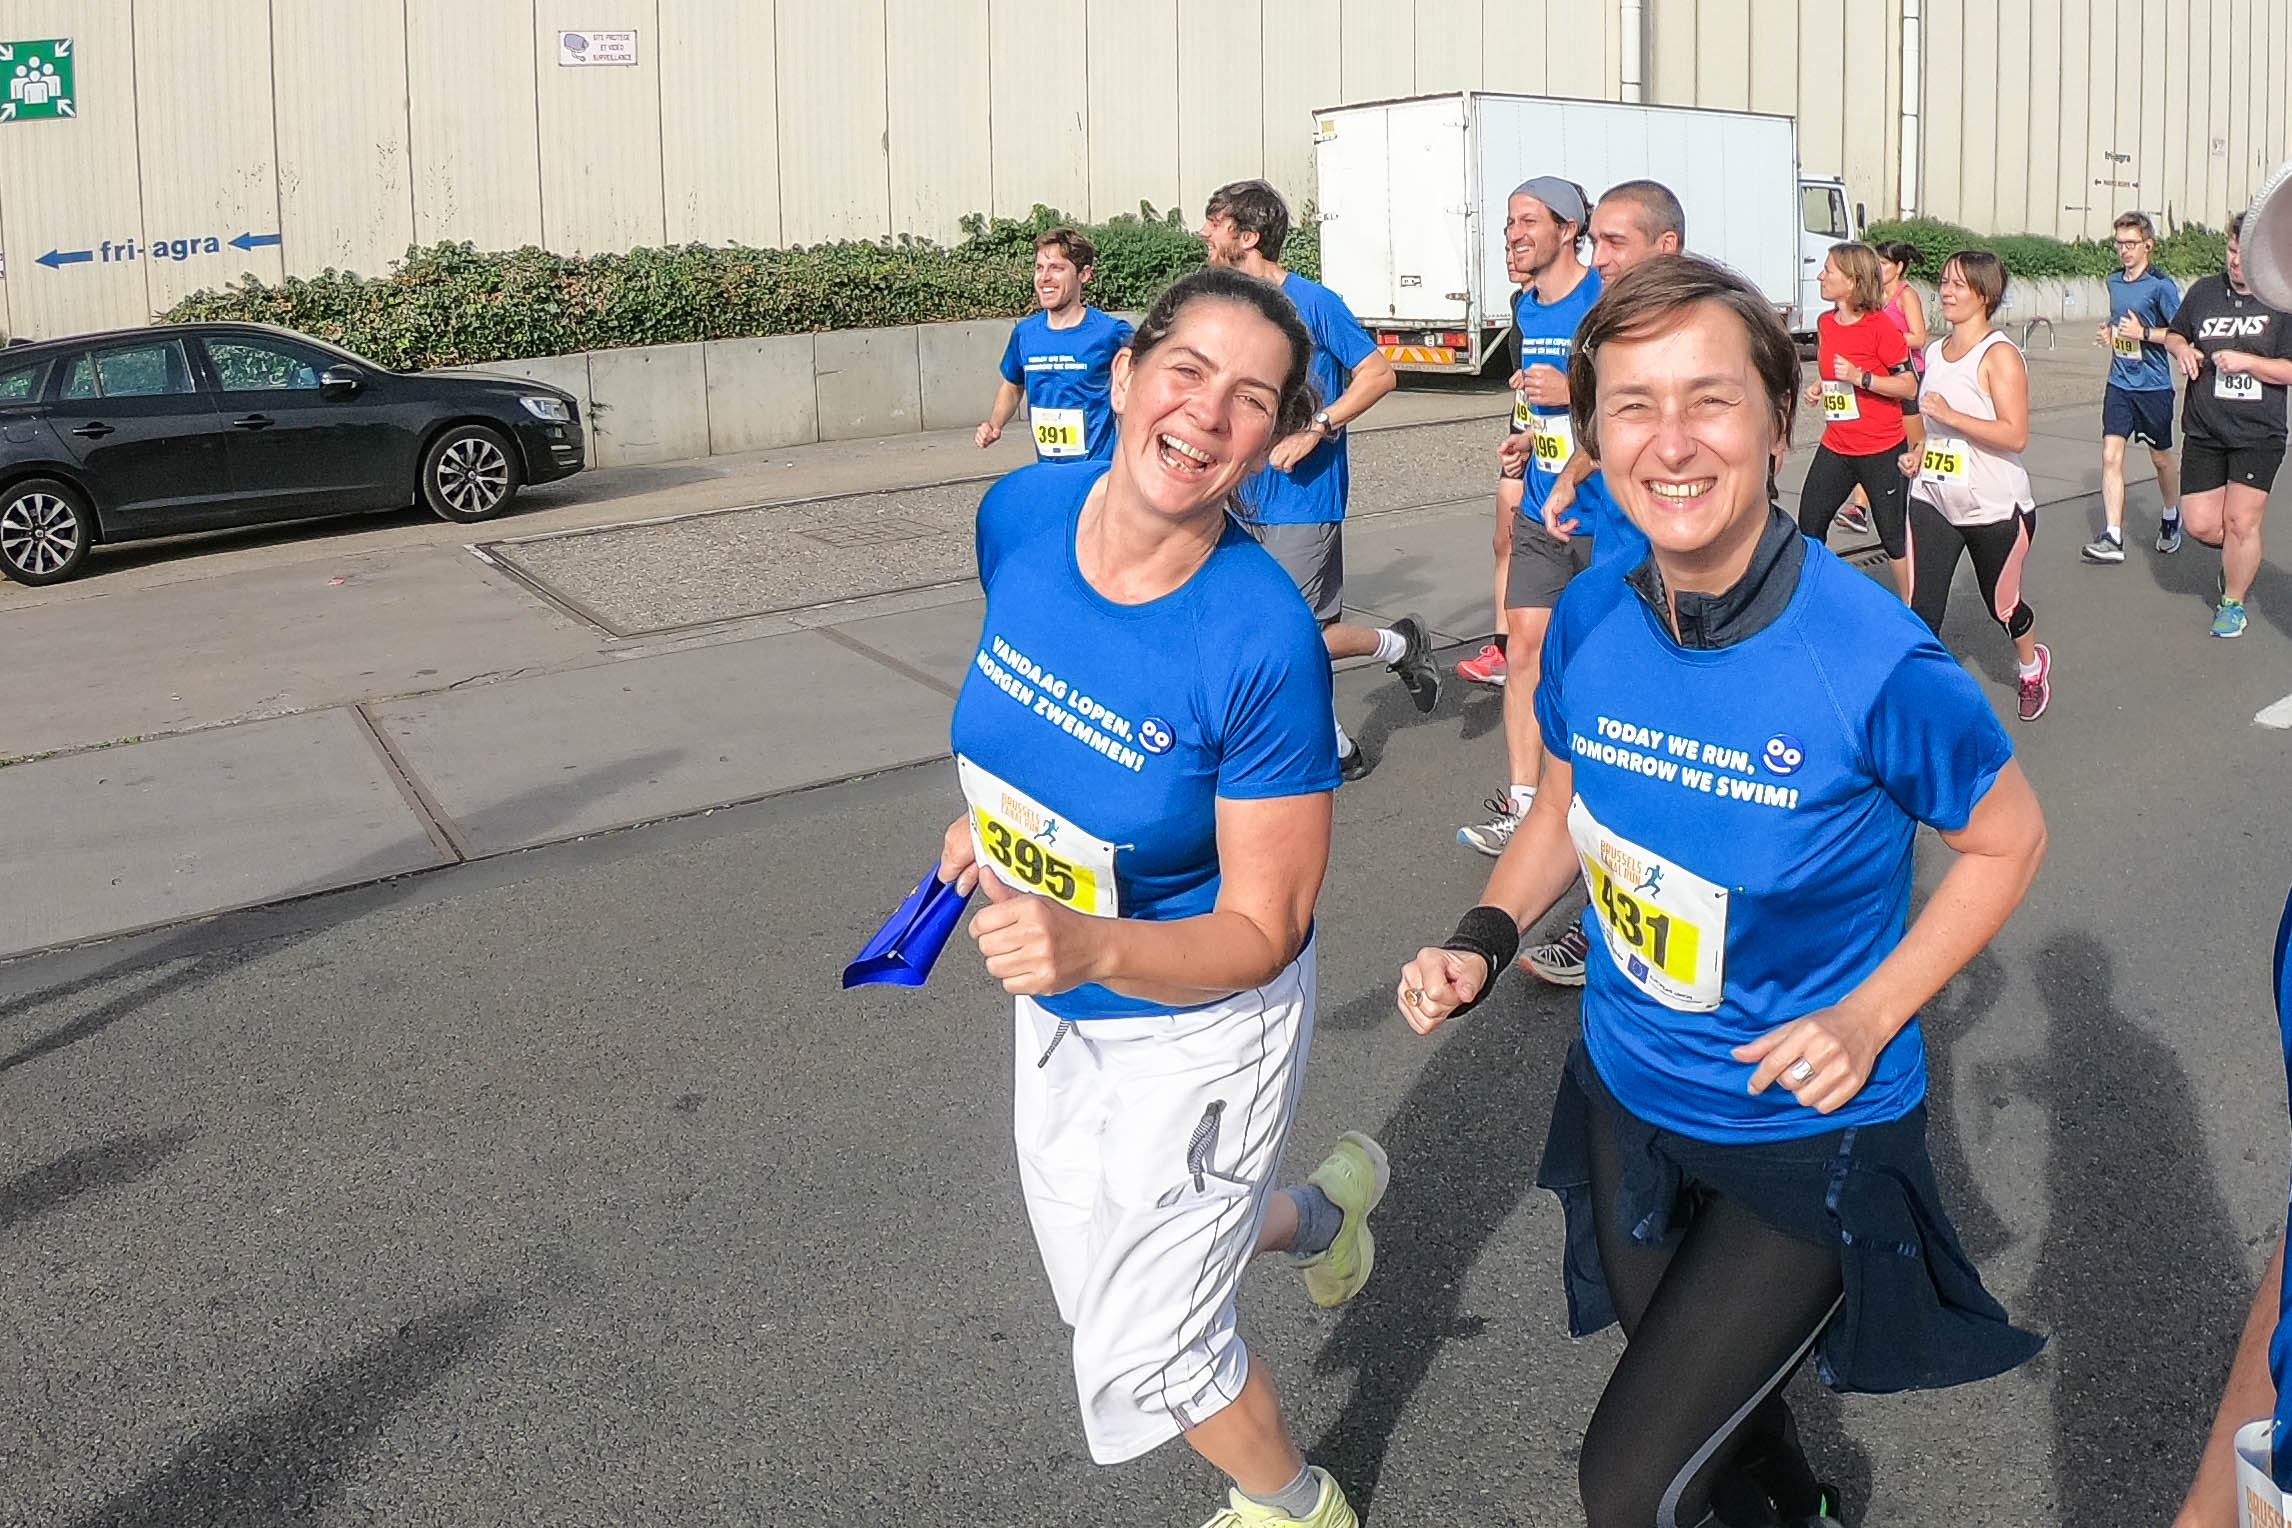 PIC_EVENT_20181020_Brussels-Canal-Run_GOPRO_006.jpg